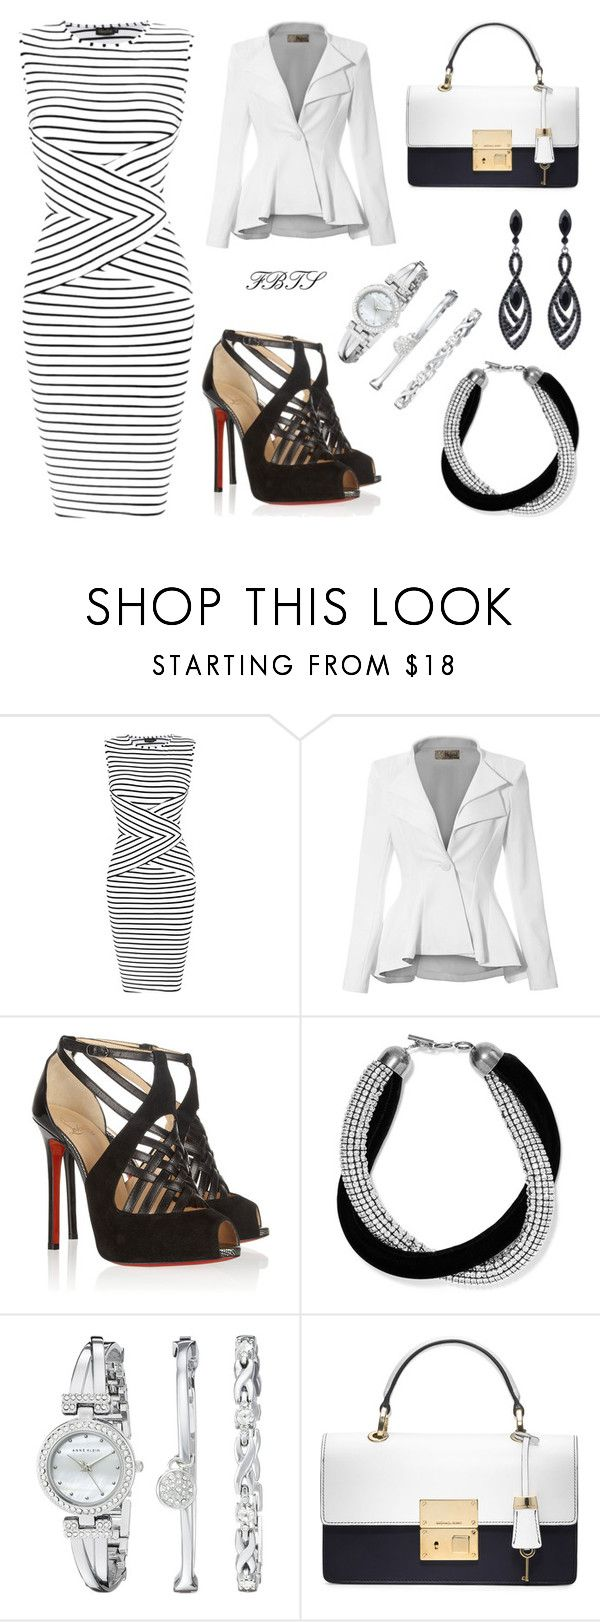 """""""She's A Cool Lady"""" by flybeyondtheskies ❤ liked on Polyvore featuring Christian Louboutin, Yves Saint Laurent, Anne Klein and Michael Kors"""